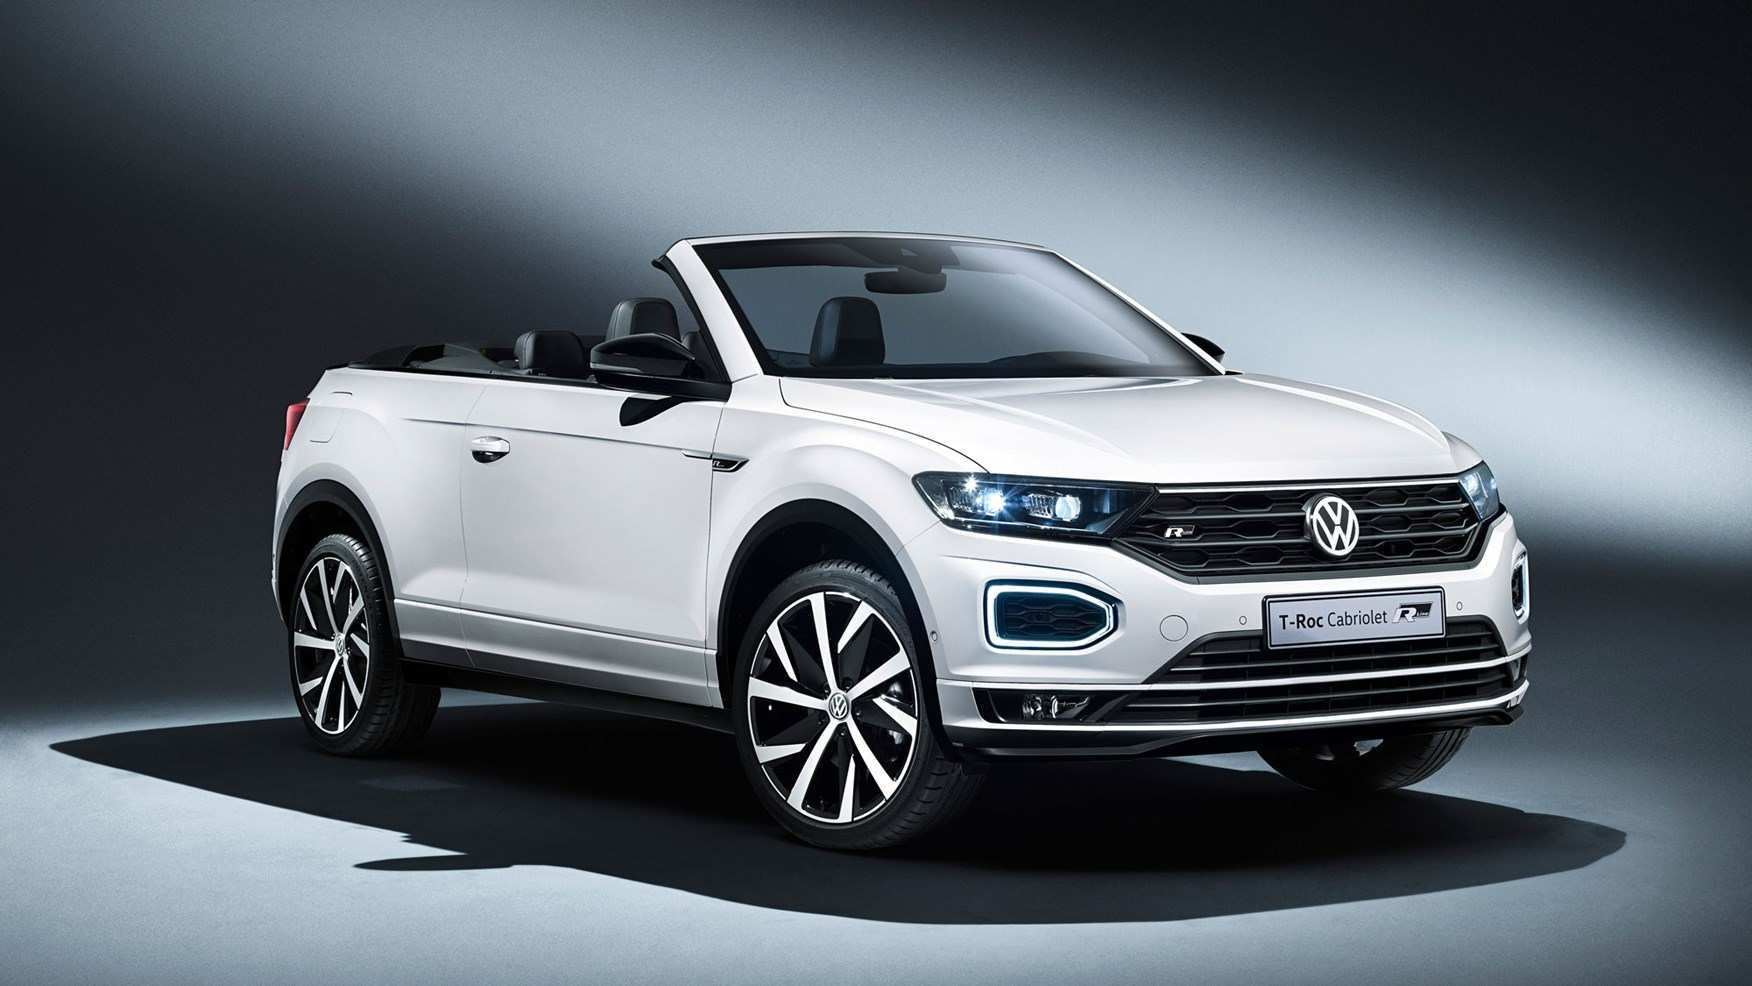 46 Best Volkswagen T Roc Cabrio 2020 Wallpaper